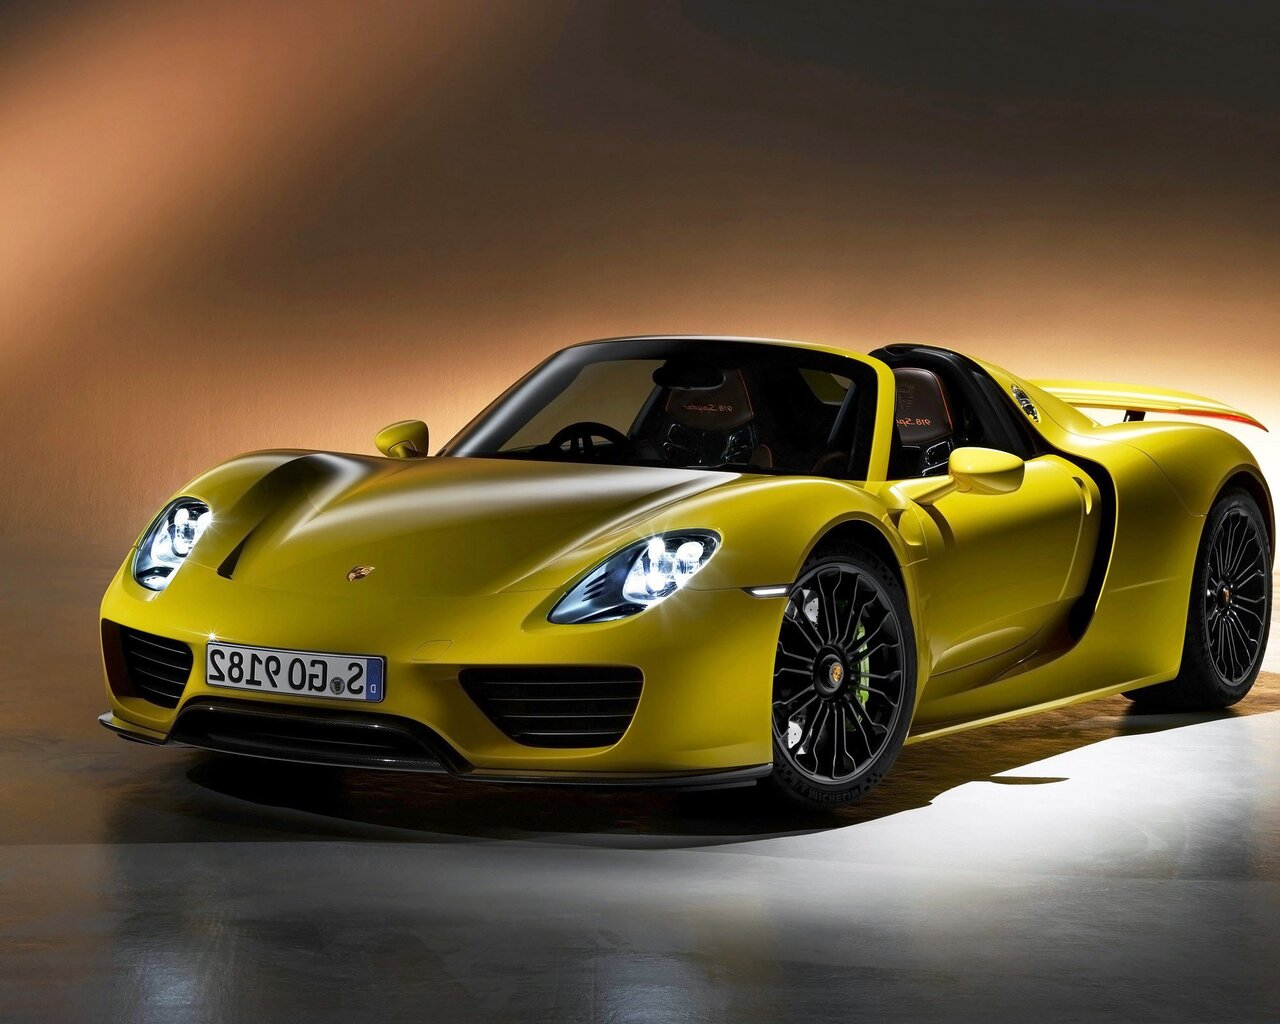 1280x1024 porsche 918 spyder desktop 1280x1024 resolution hd 4k